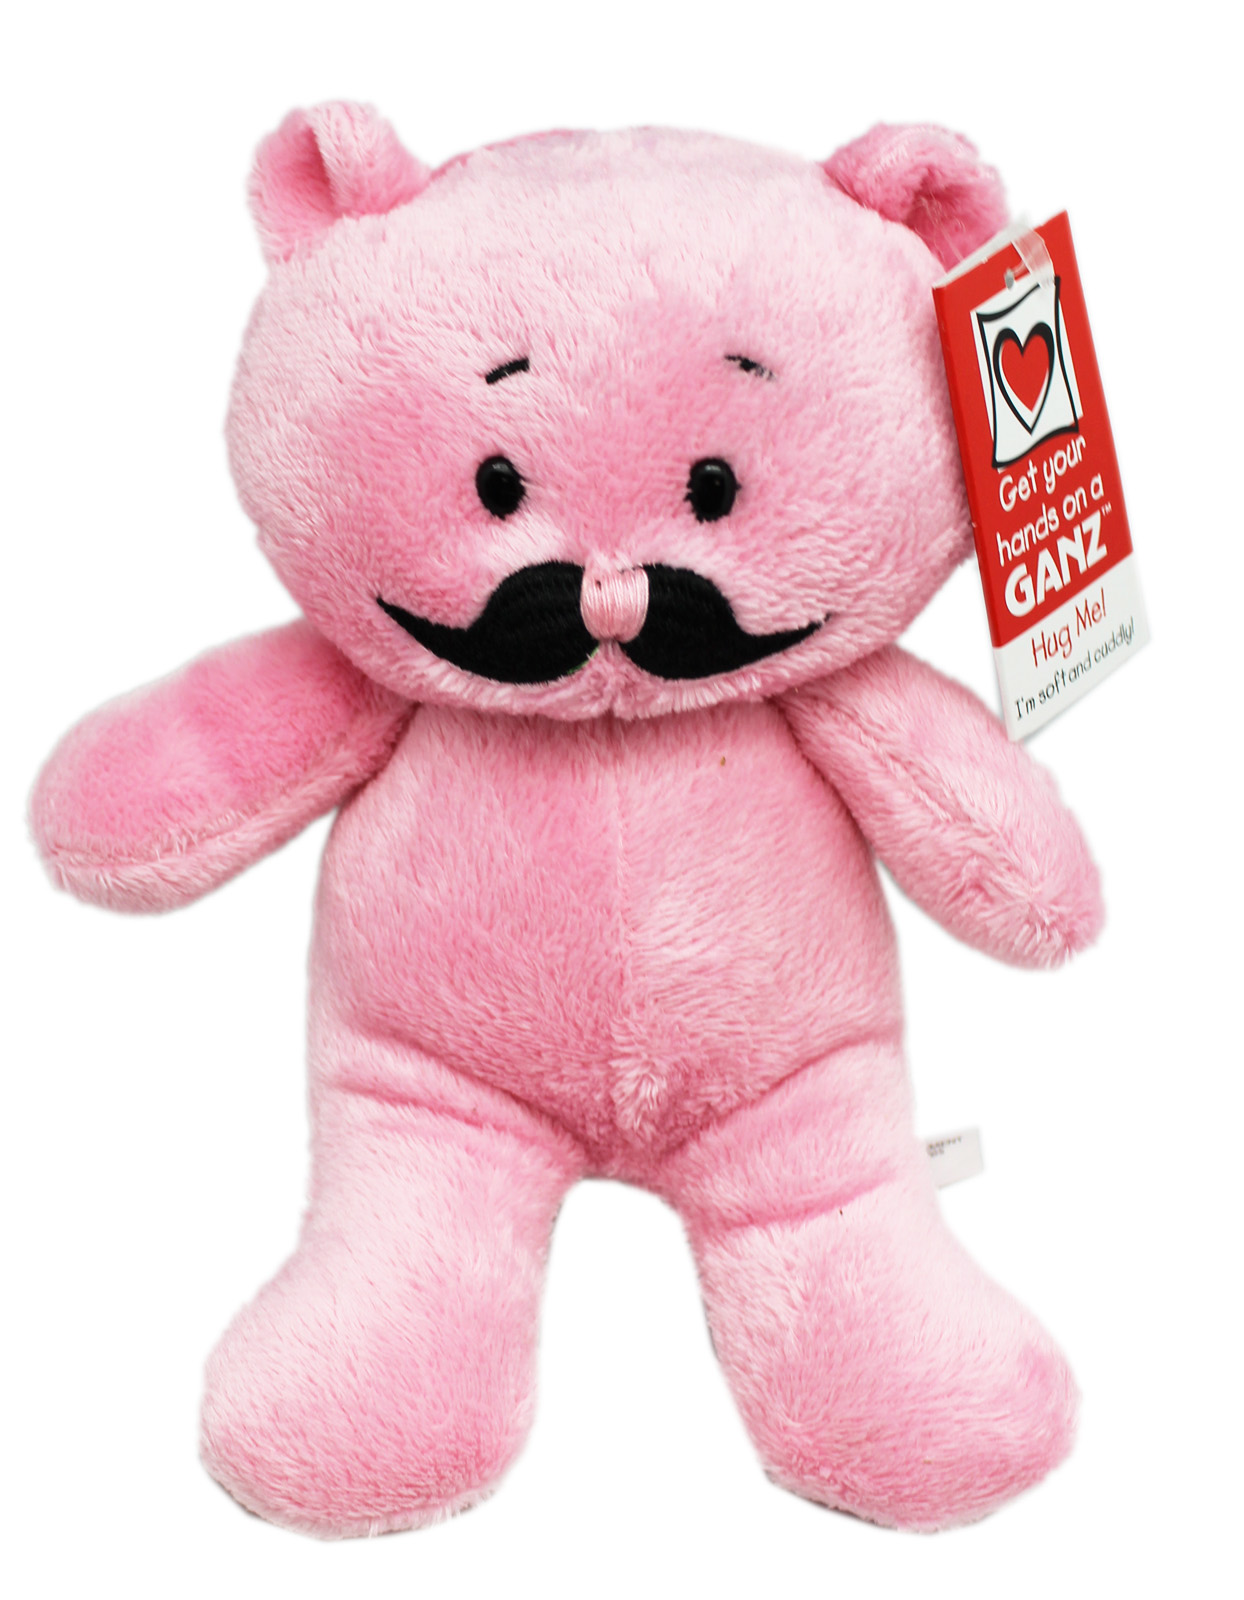 Moustache Bear Funny Pink Colored Small Size Teddy Bear By Ganz by